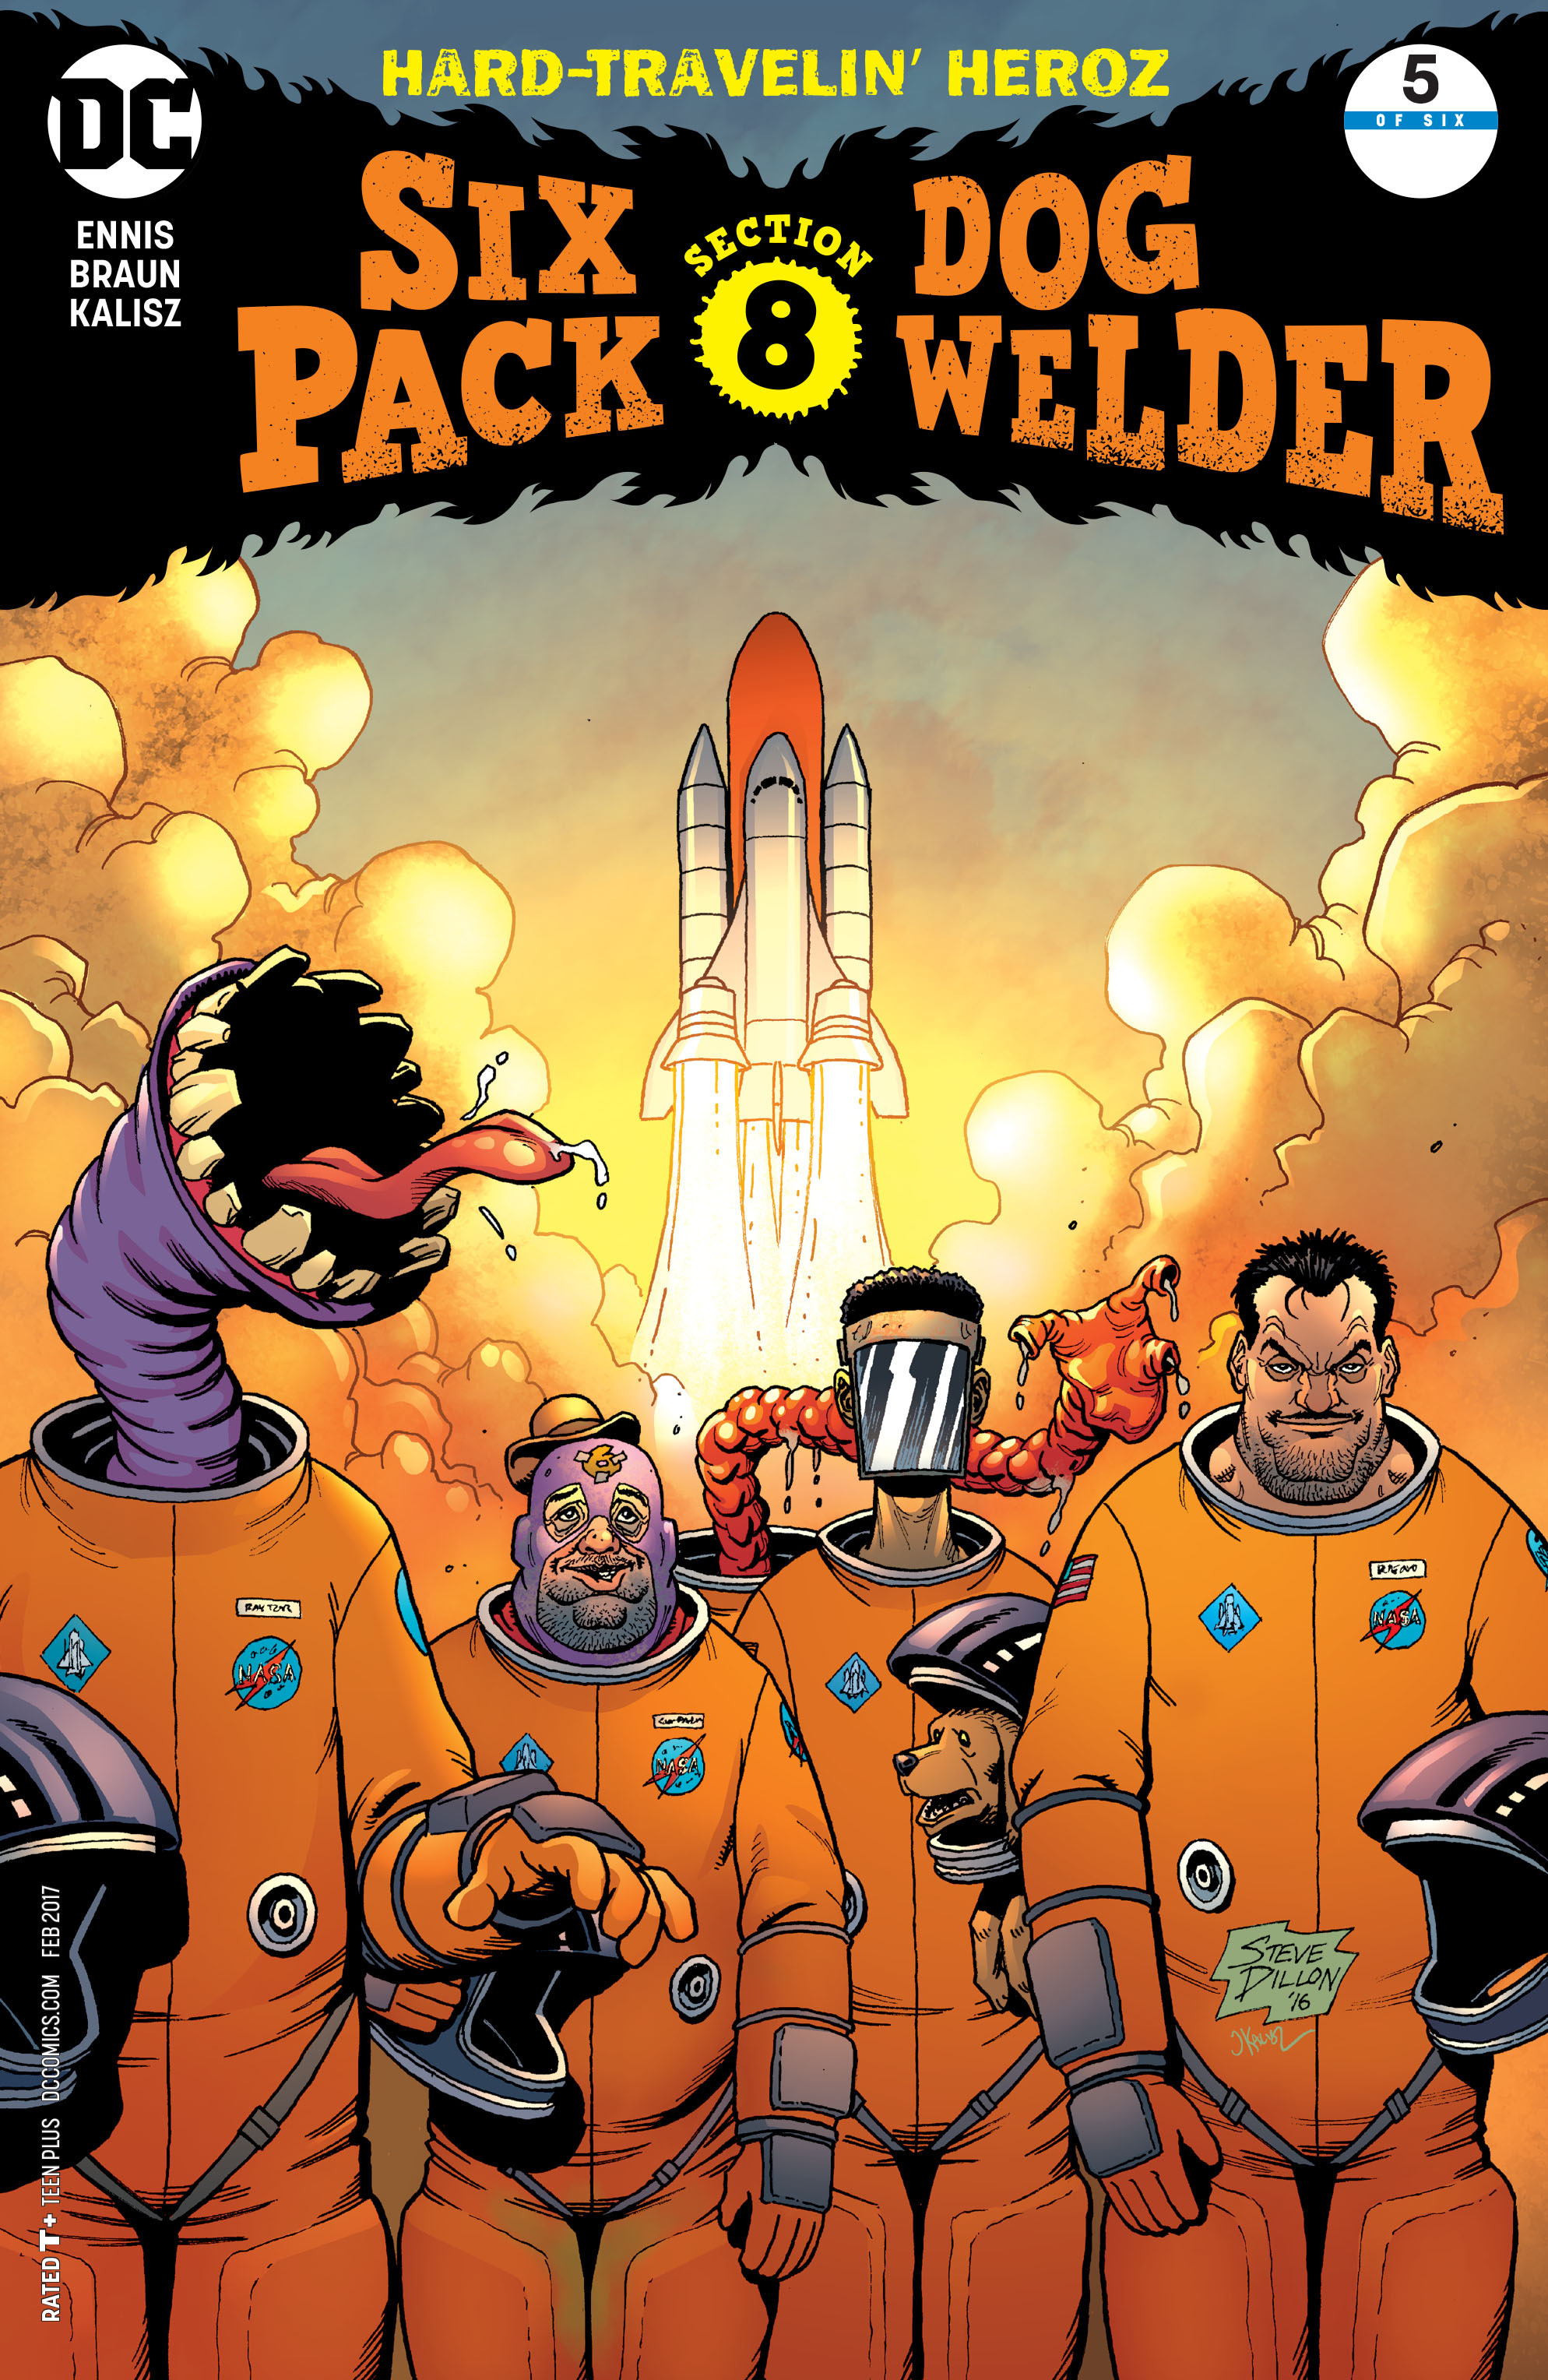 Read online Sixpack and Dogwelder: Hard Travelin' Heroz comic -  Issue #5 - 1